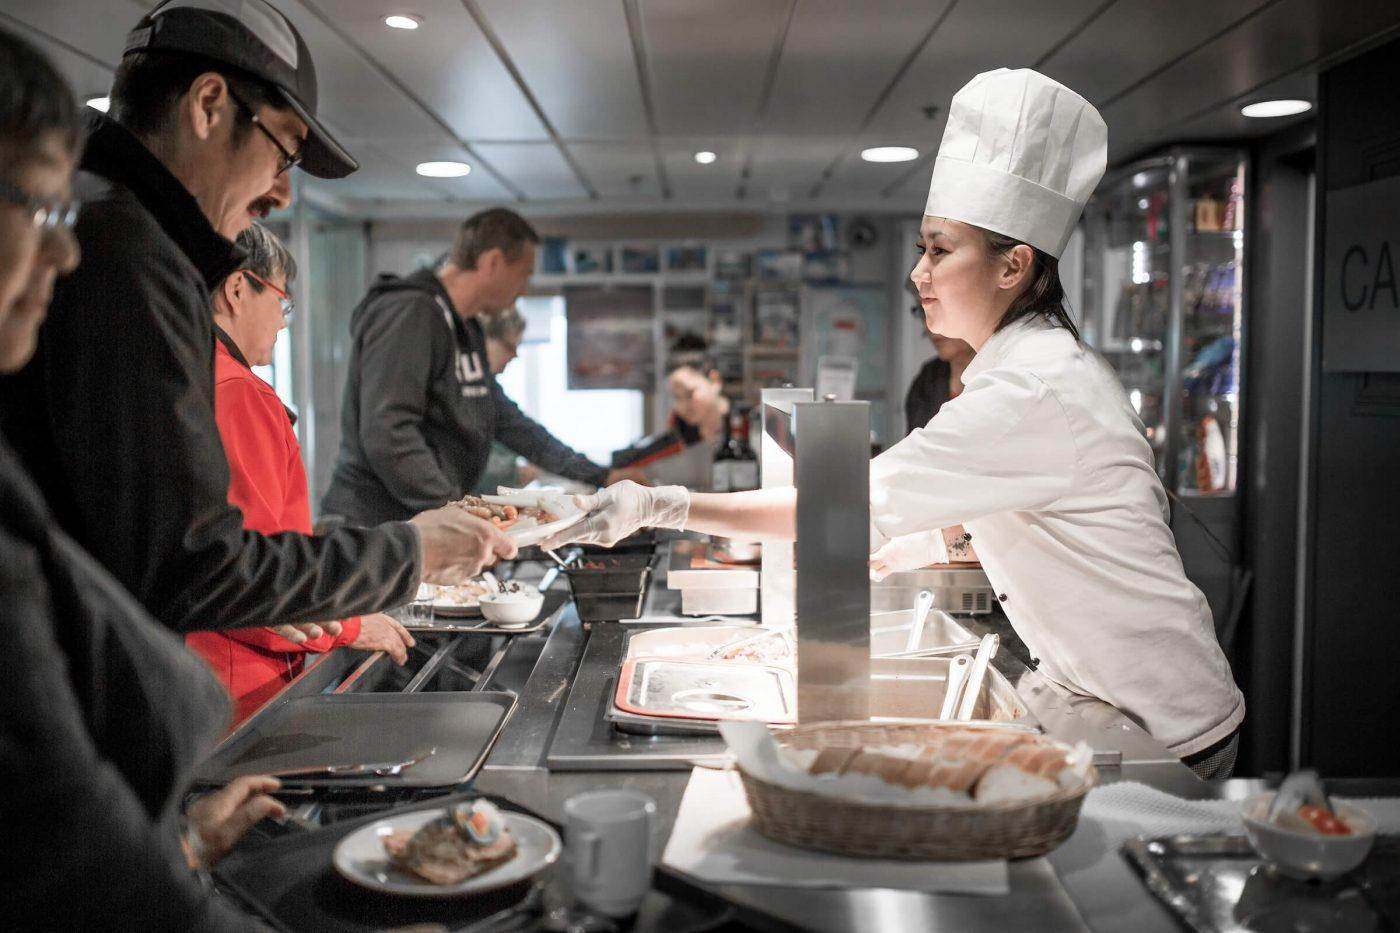 A chef serving dinner on board the passenger ferry Sarfaq Ittuk in GreenlandGuests in one of the cabins in Sarfaq Ittuk. Visit Greenland